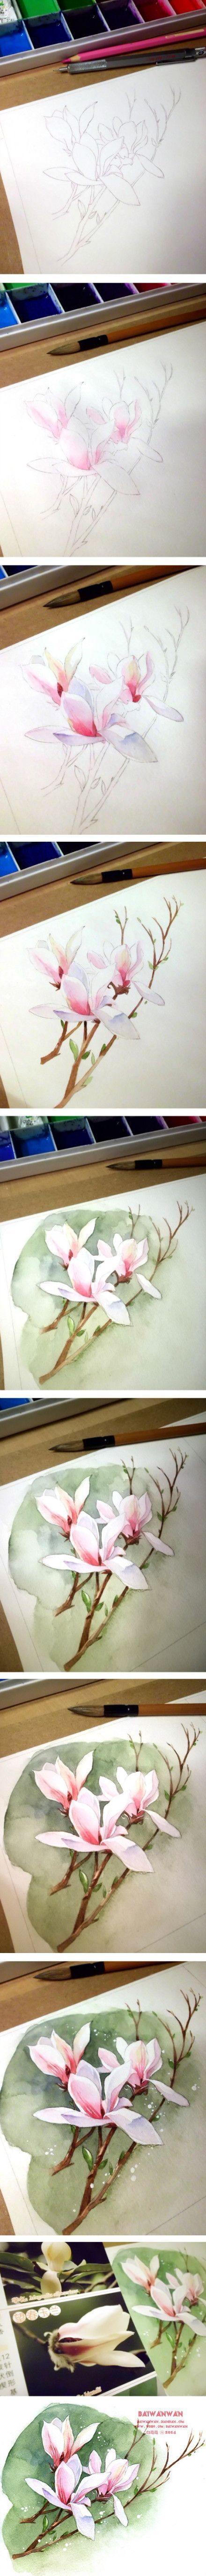 Step by step - how to paint magnolias